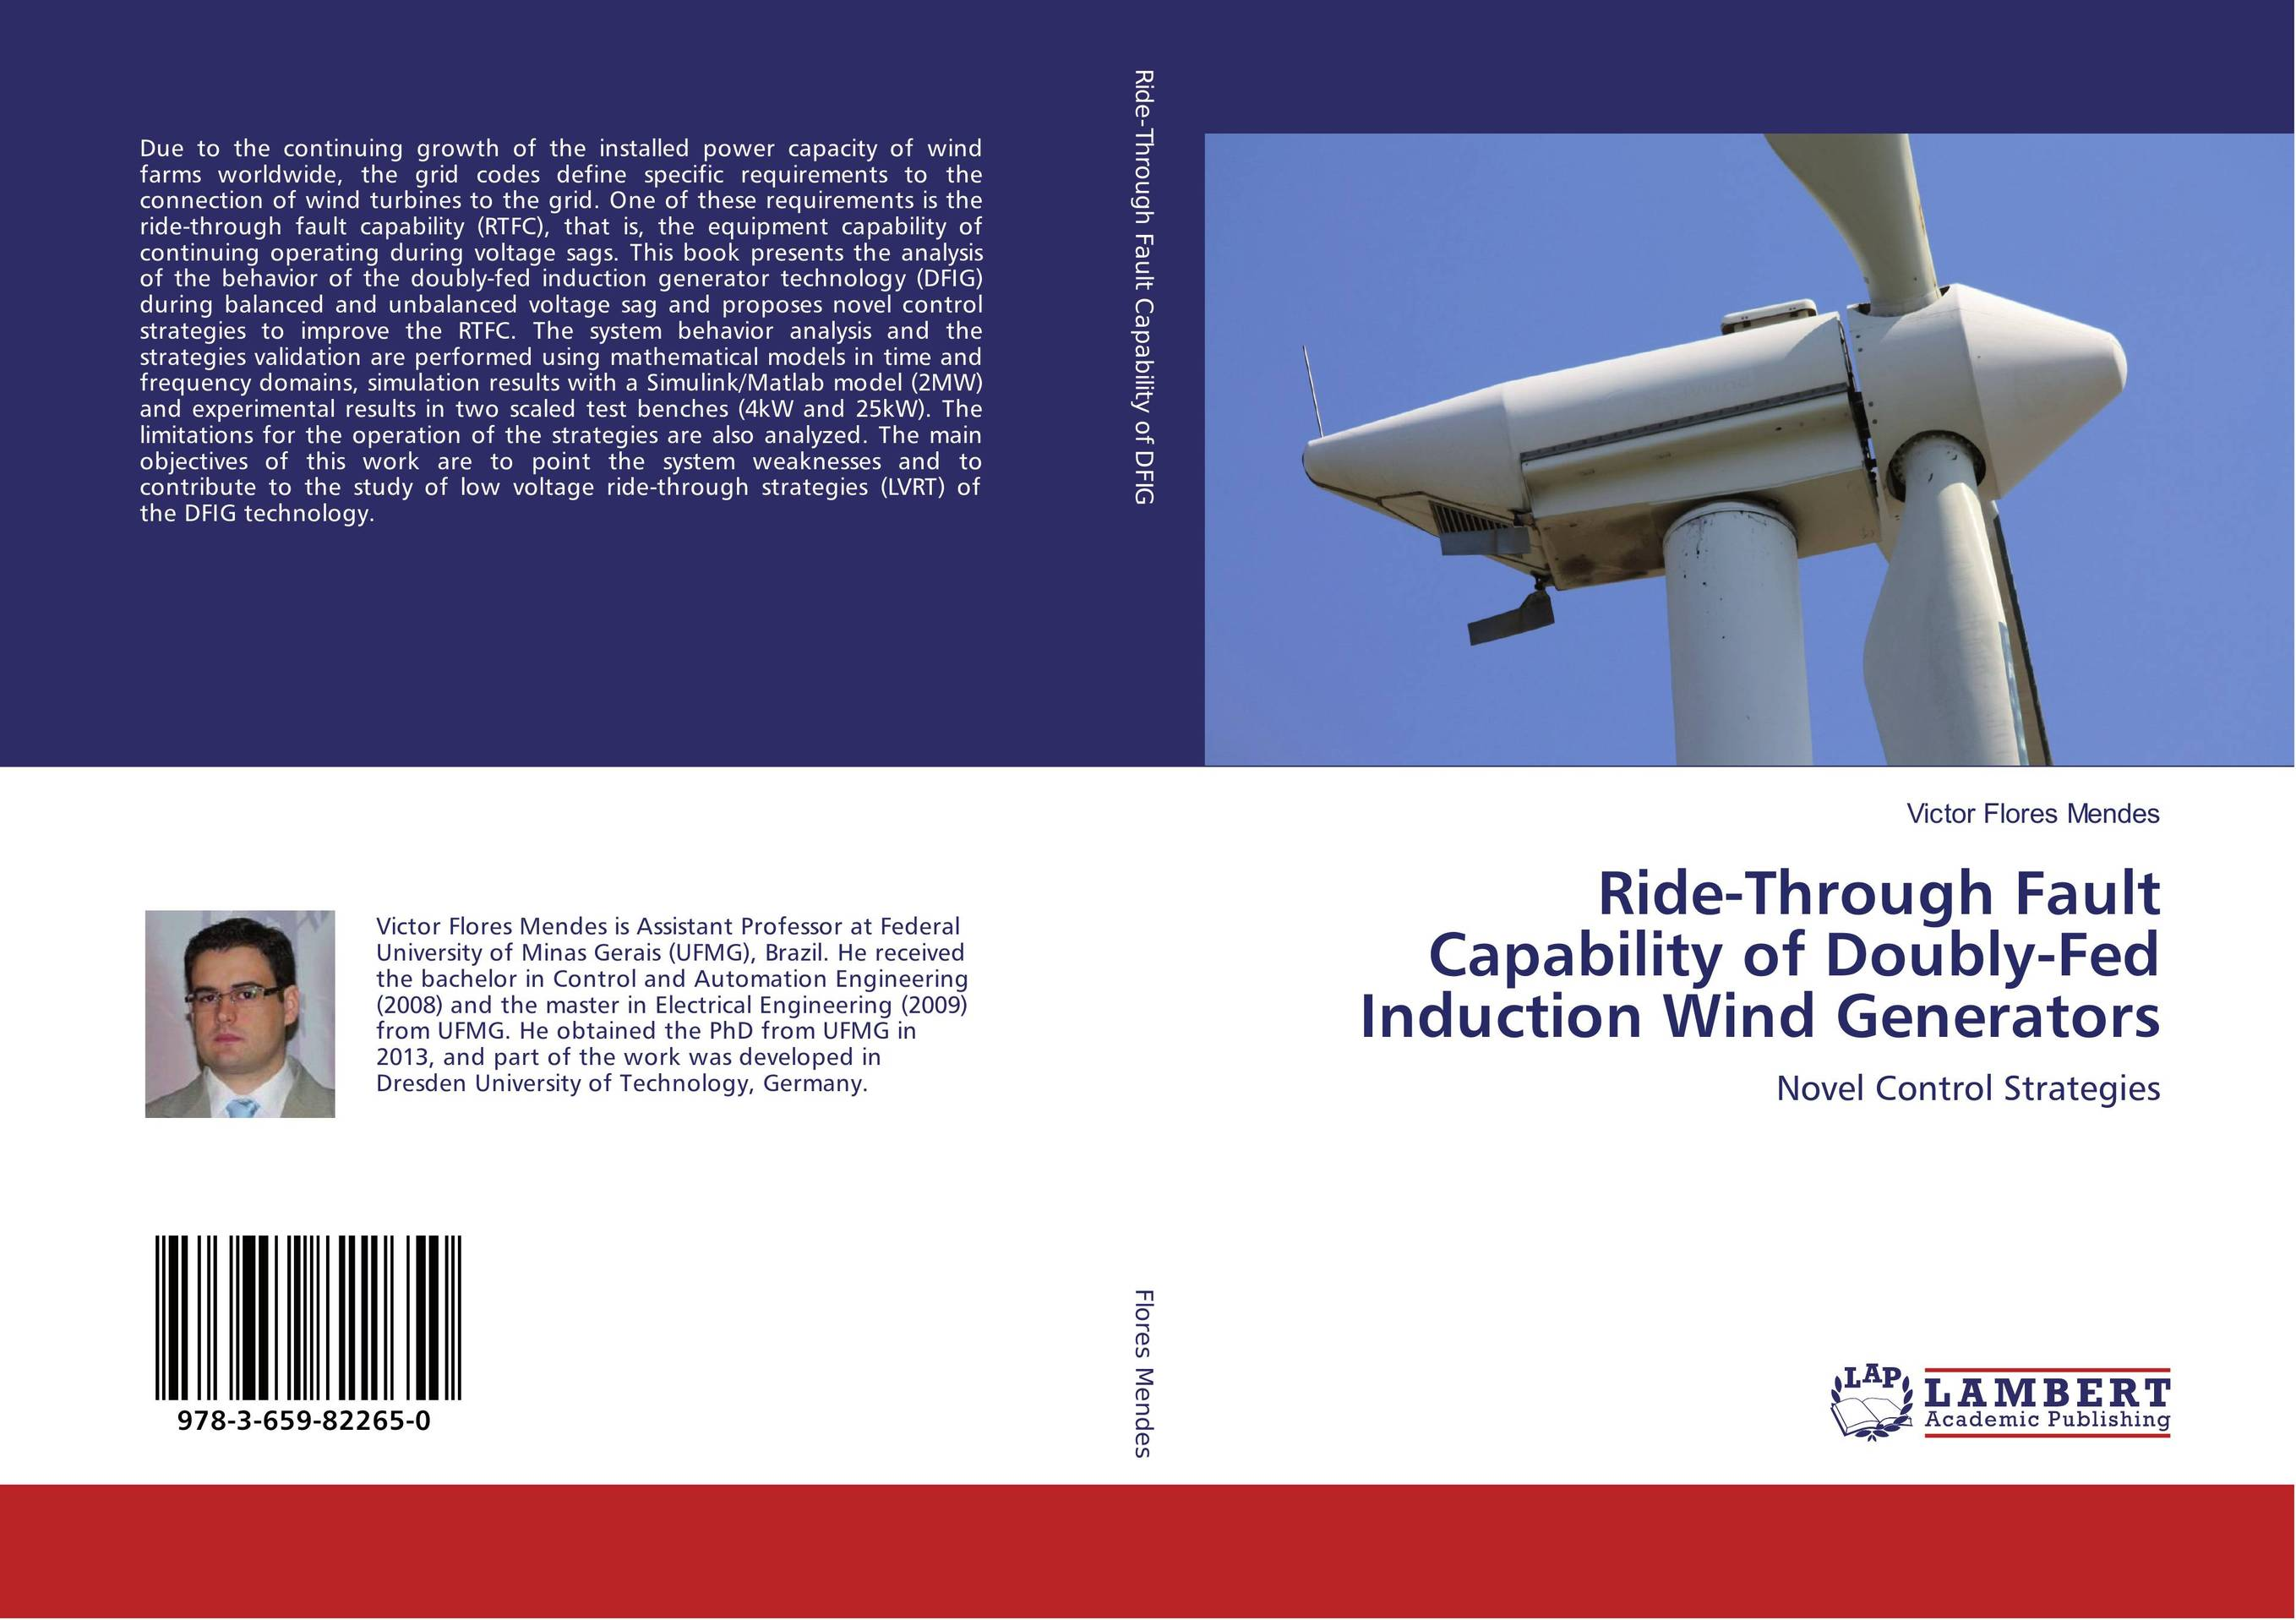 Ride-Through Fault Capability of Doubly-Fed Induction Wind Generators